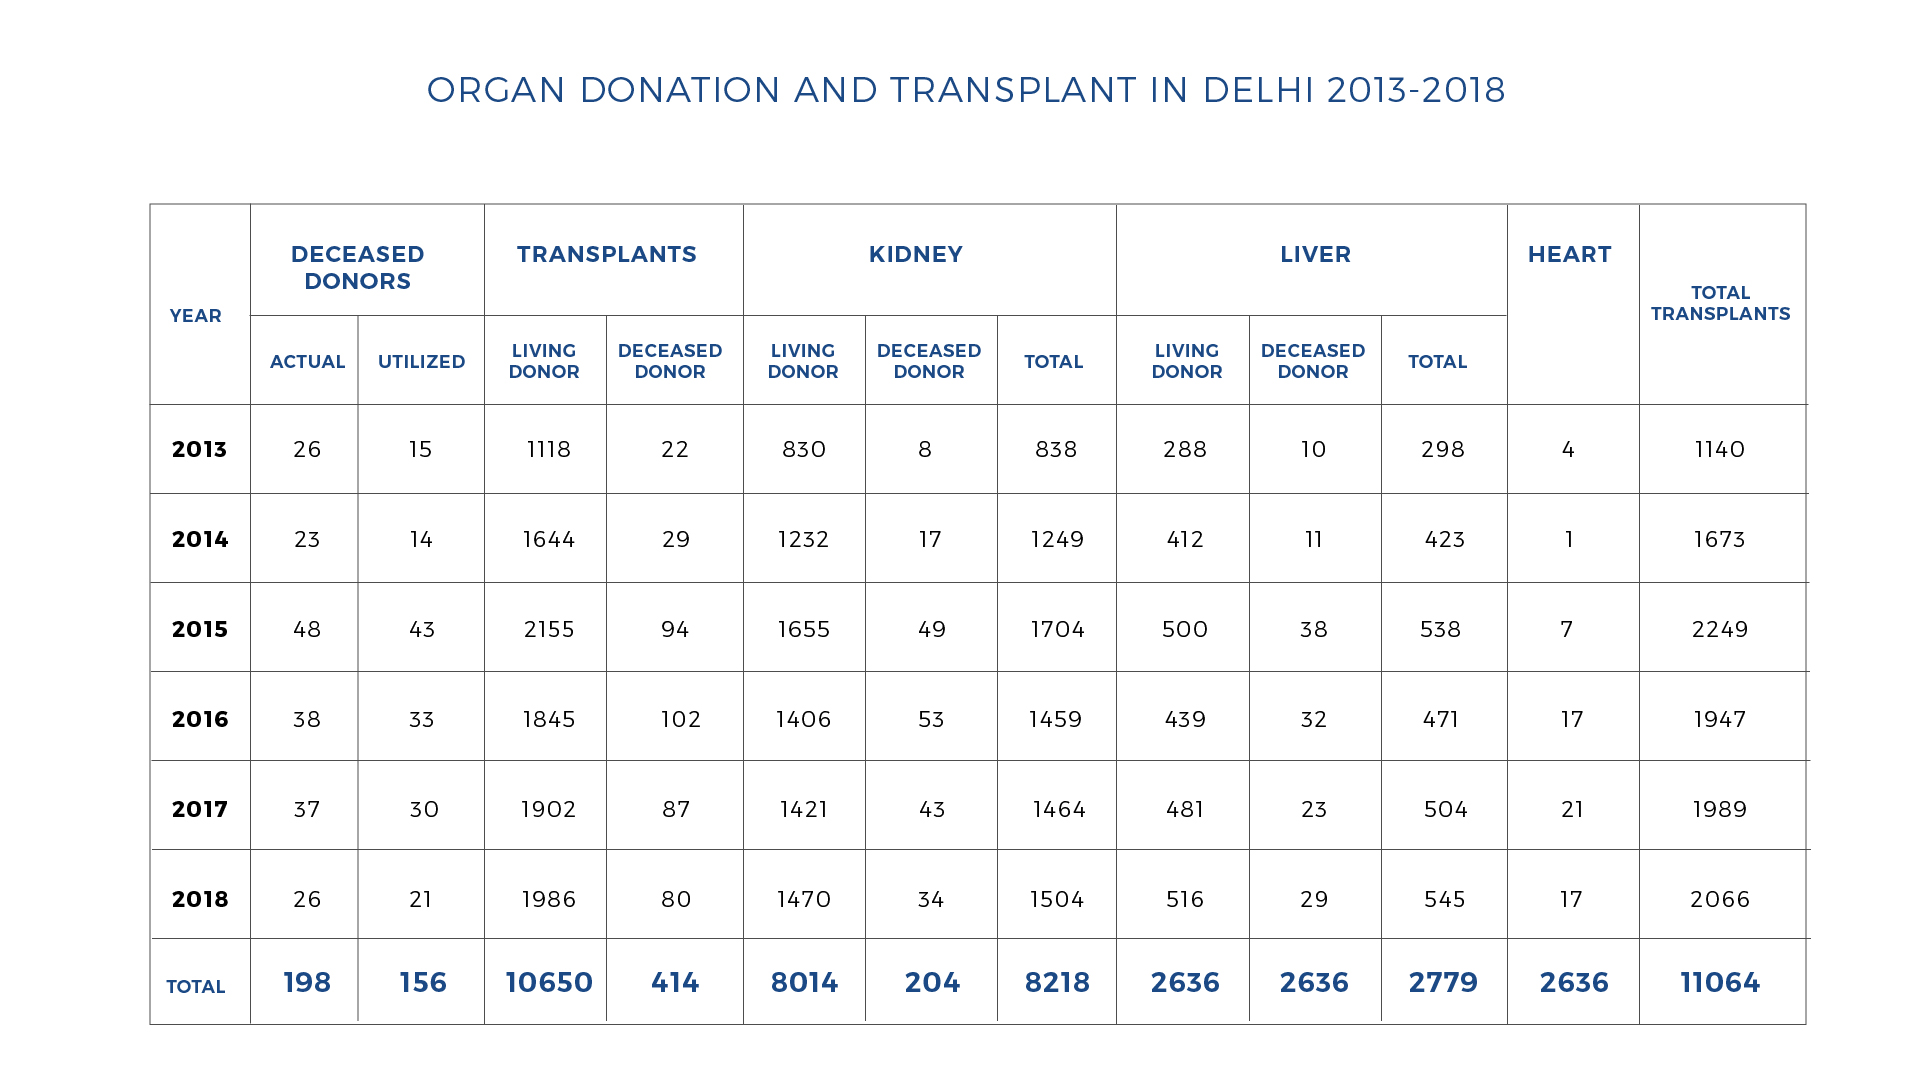 Organ Donation and Transplant in Delhi